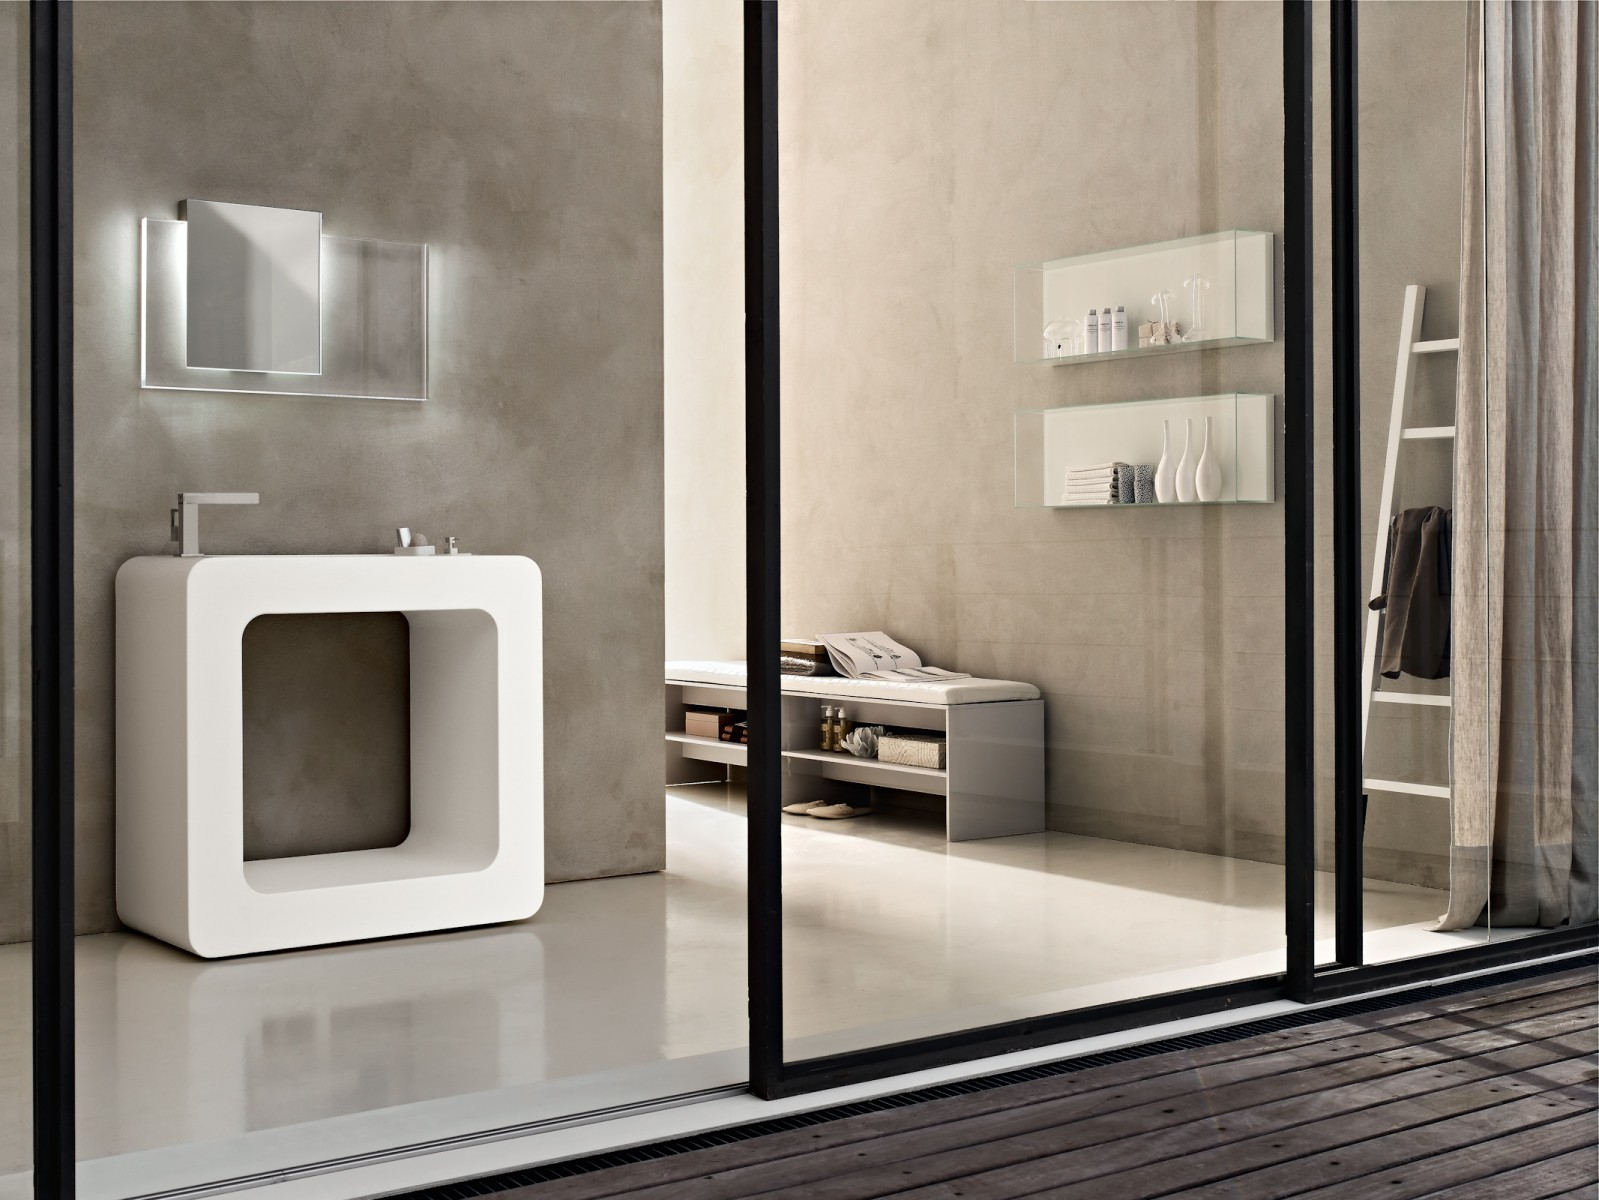 Ultra modern italian bathroom design - Bathroom design ...